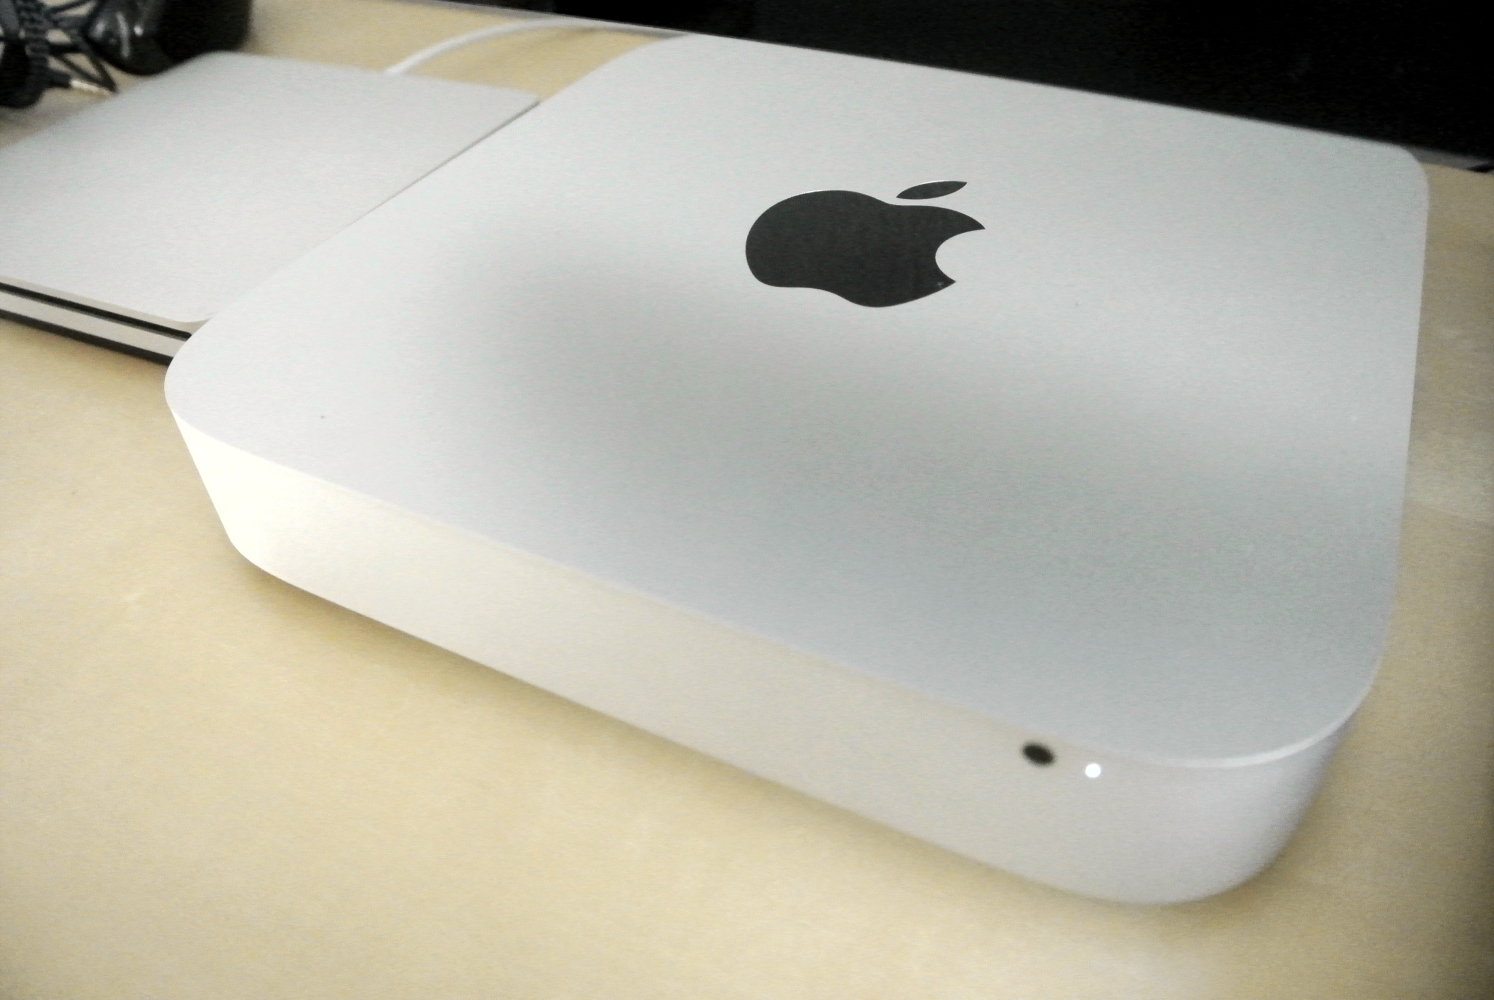 Tim Cook says Apple plans to keep Mac mini in the lineup, stops short of promising update